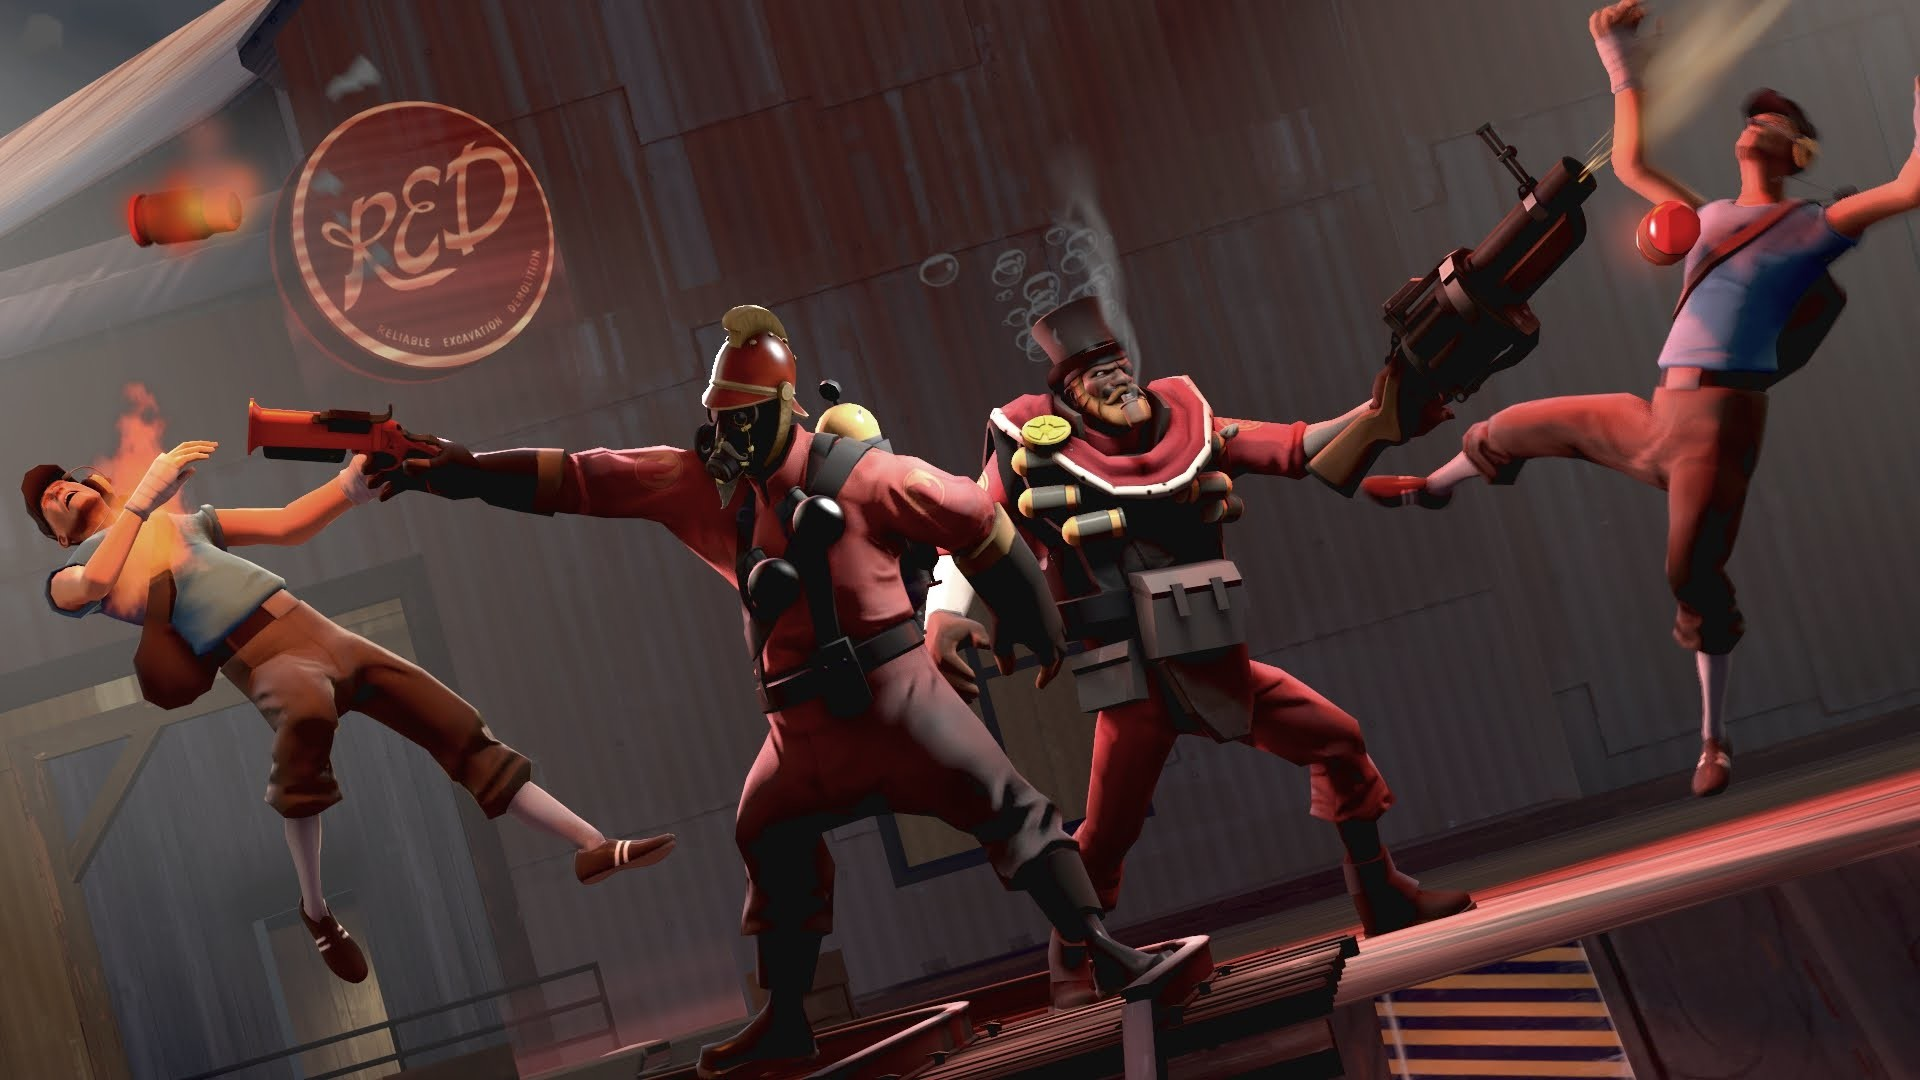 Tf2 Hd Wallpapers 75 Images